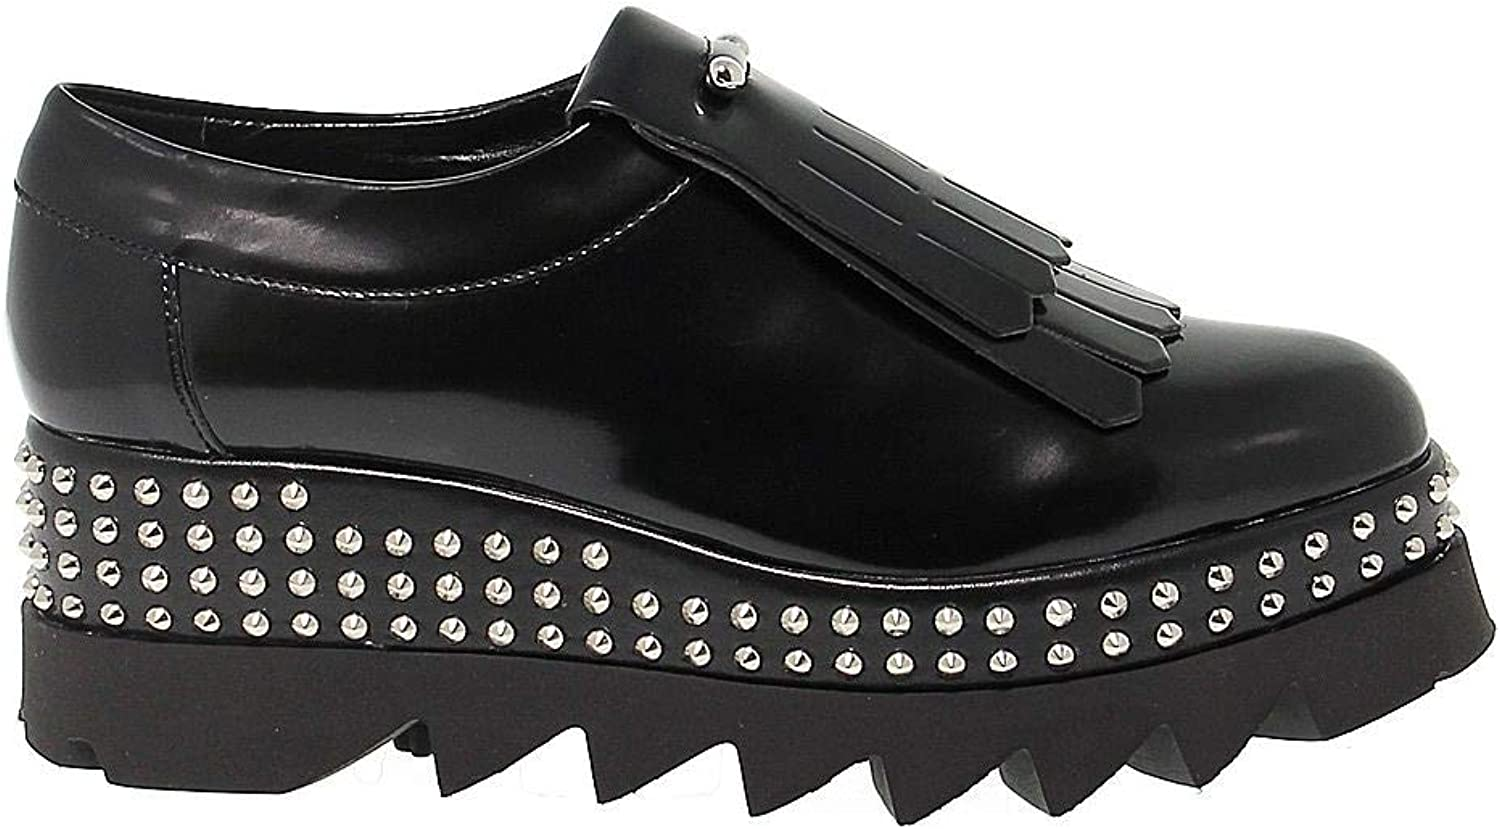 CULT Women's CULT102610 Black Leather Lace-Up shoes